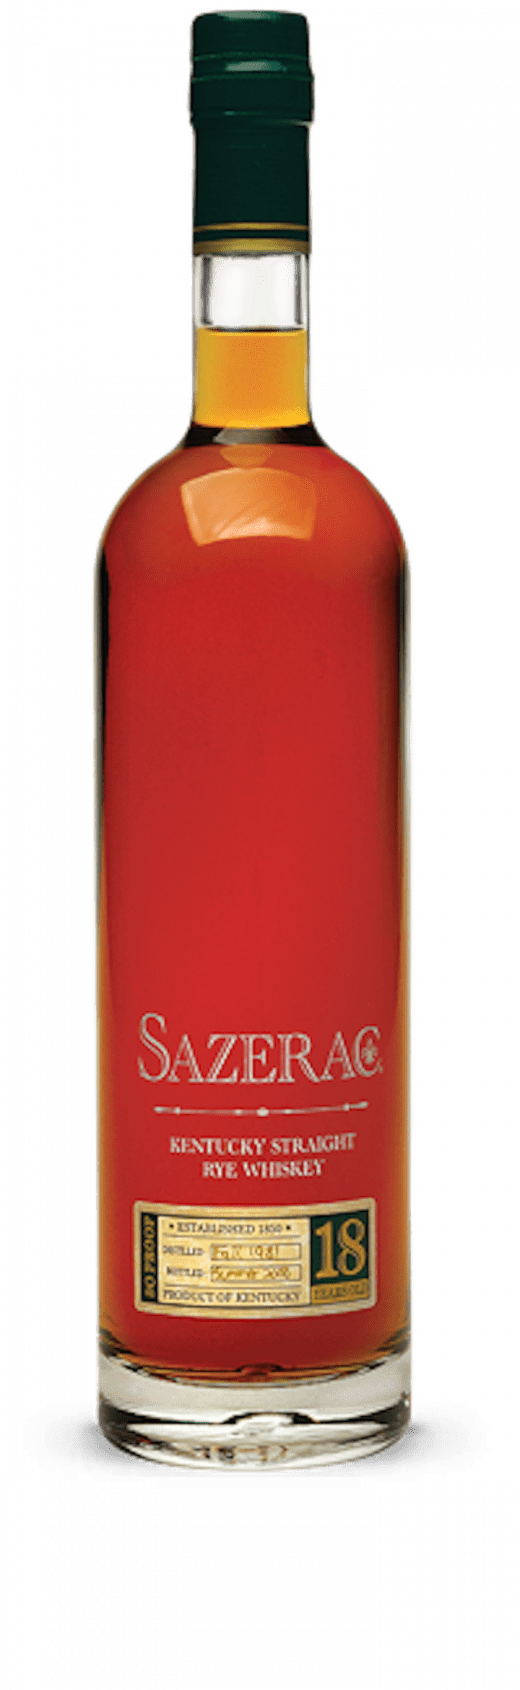 Sazerac Rye 18 Year Old 2018 750ml - The Rare Whiskey Shop